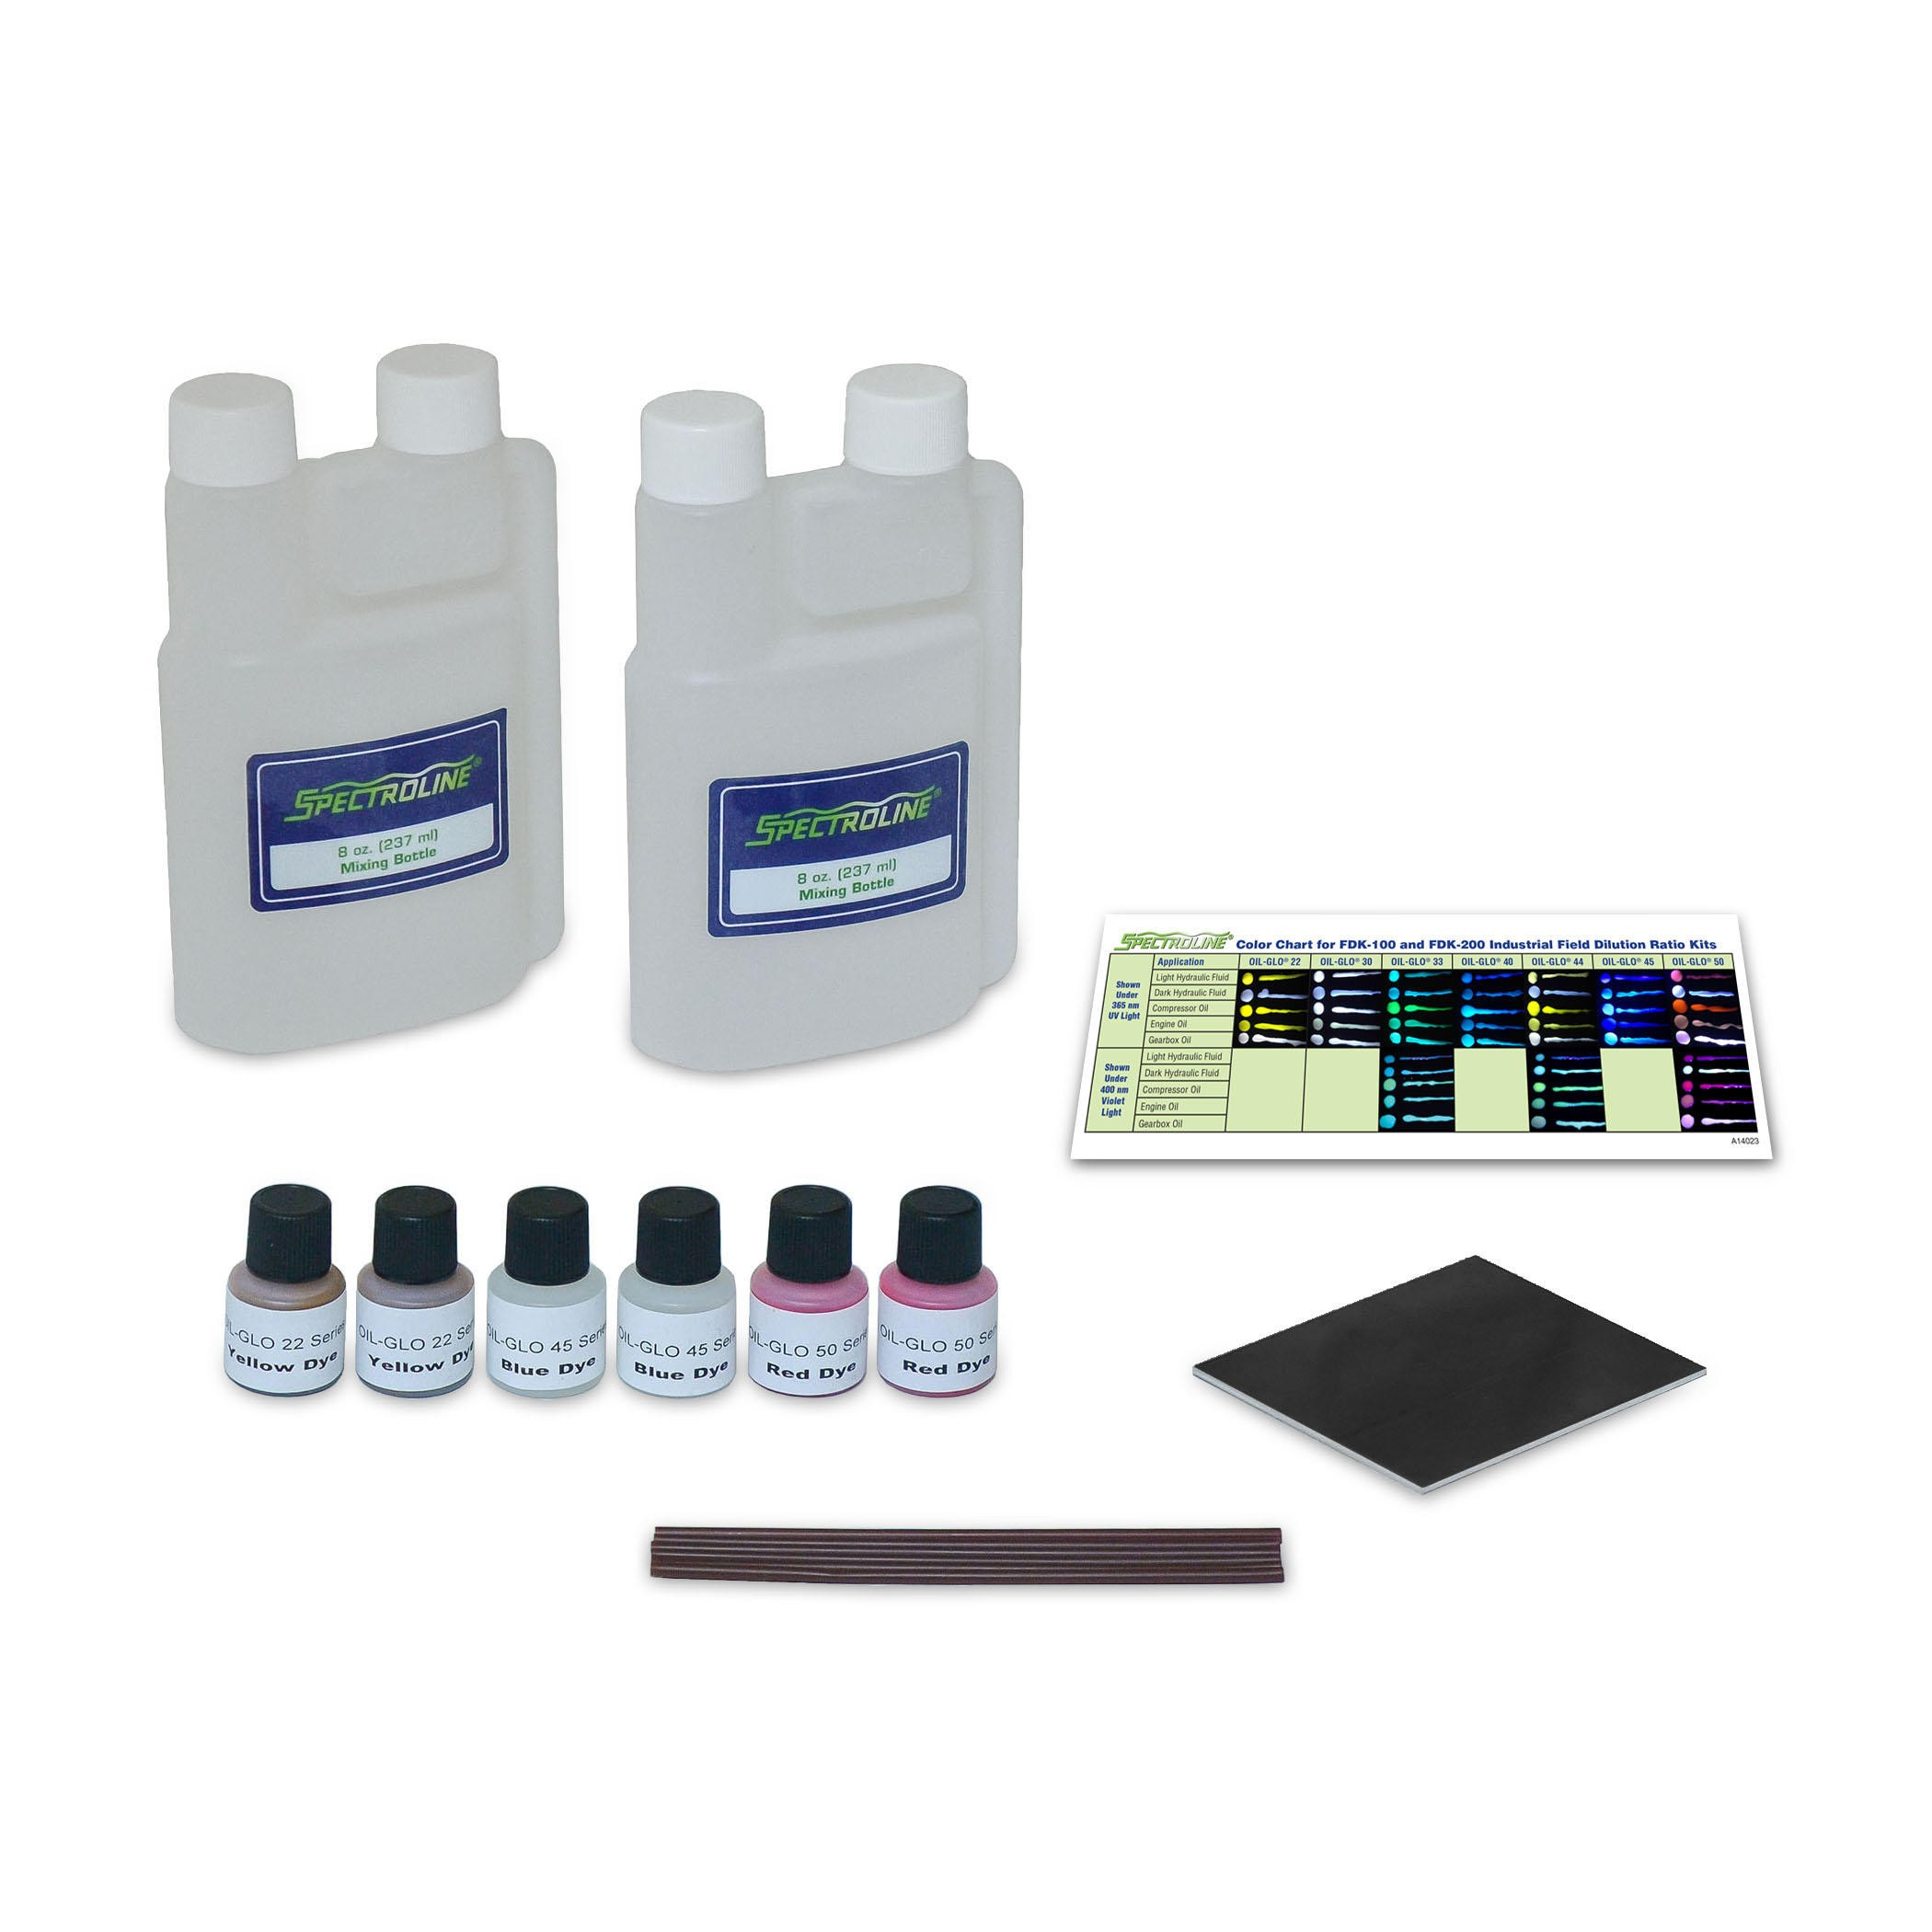 Oil Sample Test FDK-200 Kit